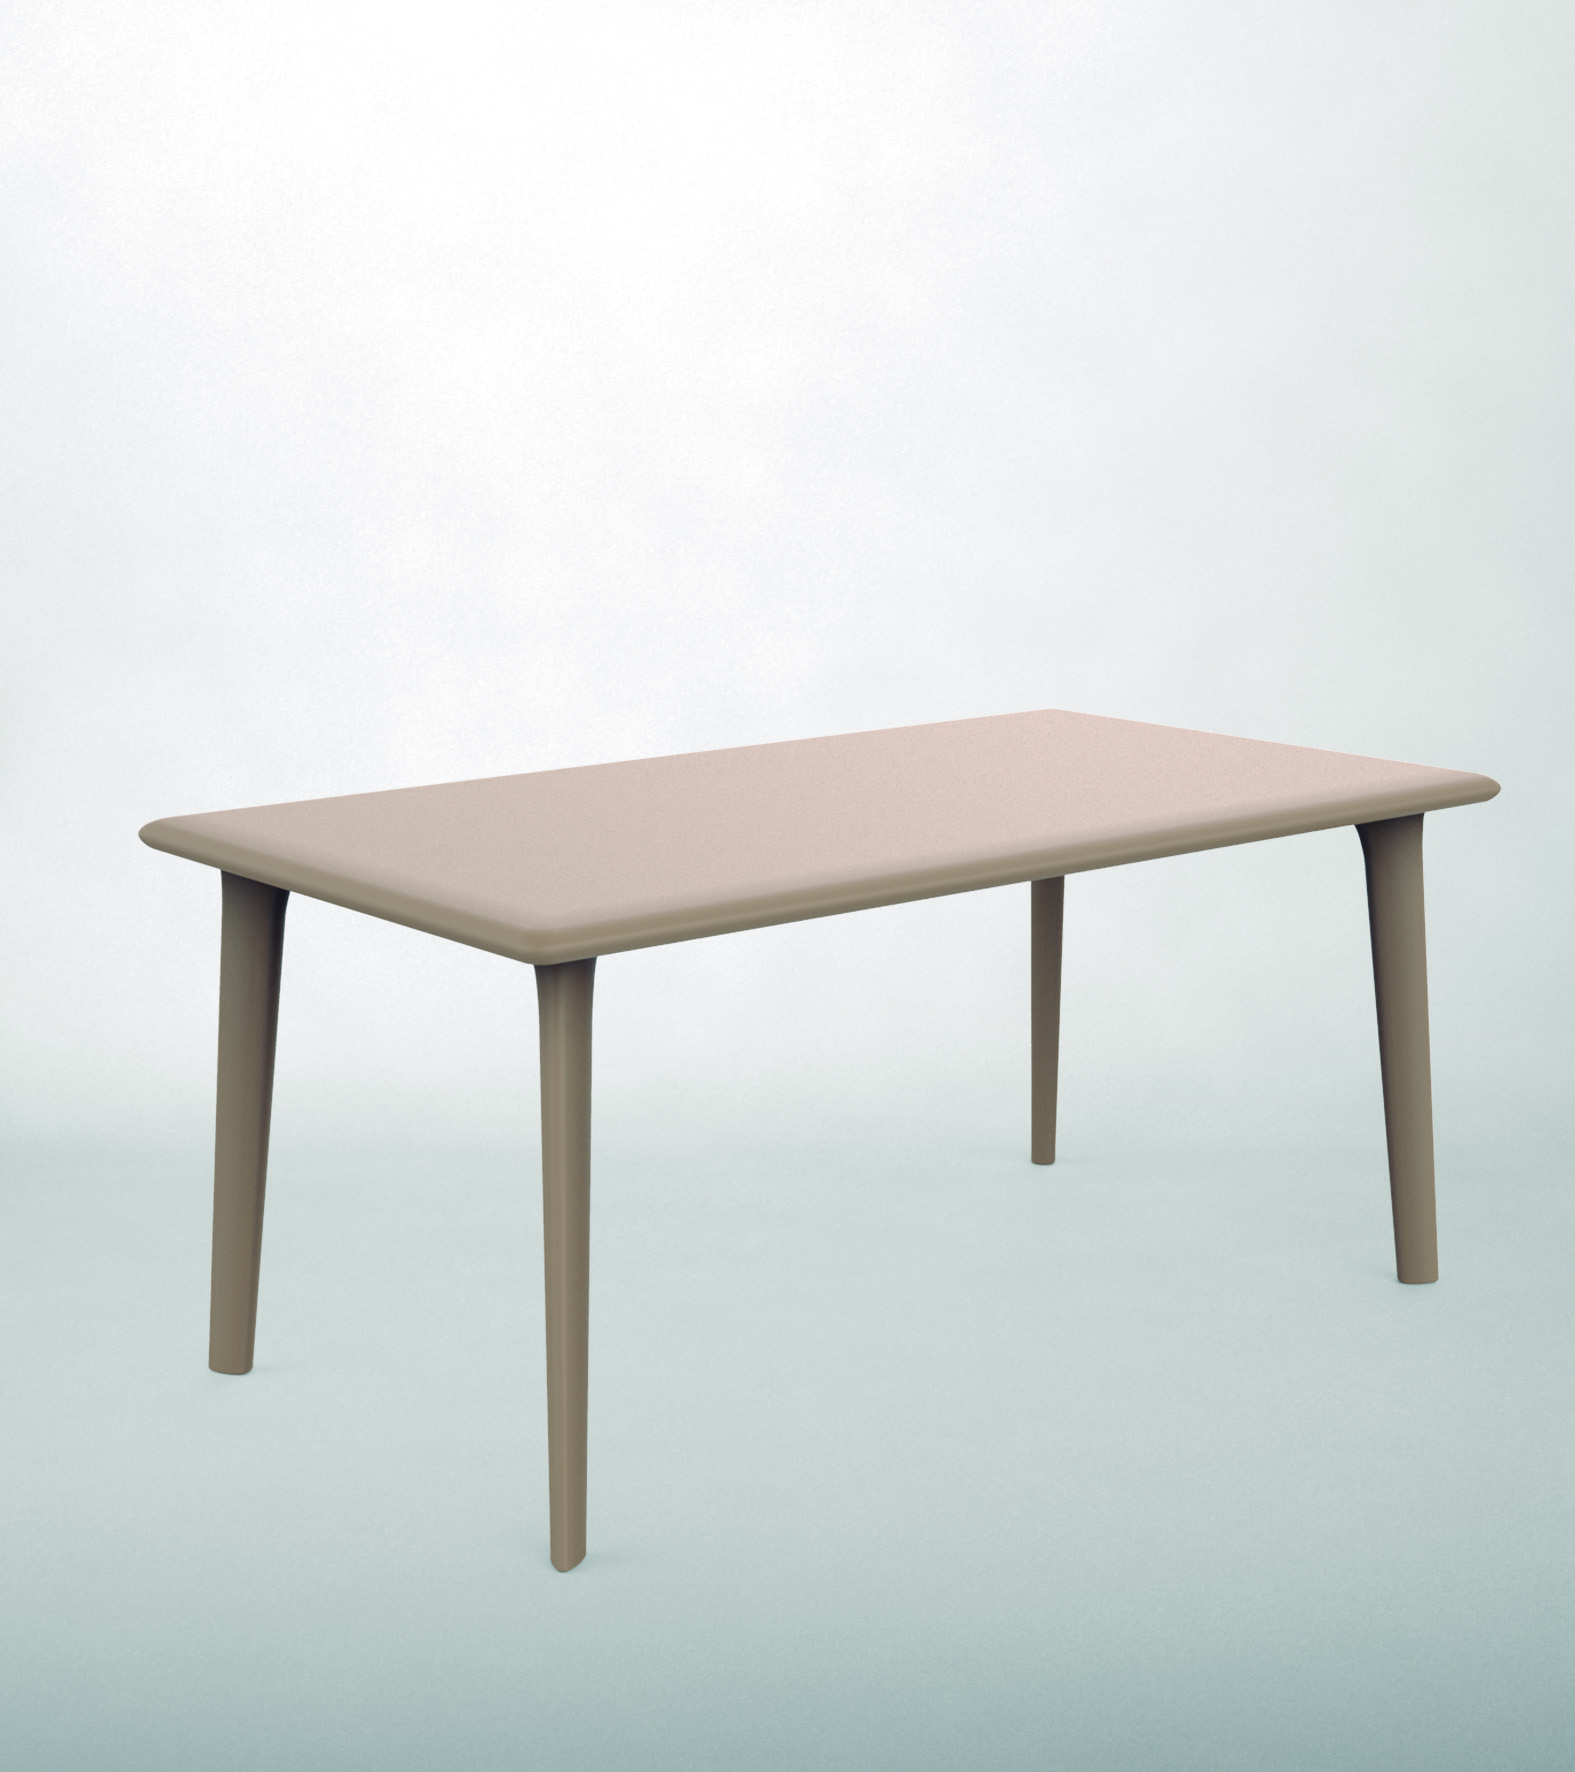 <p>Outdoor Furniture Contemporary Collection – Calera Commercial Dining Table – Sand.</p> <p> </p> <p>Table for indoor and outdoor use available in a variety of colours.</p> <p> </p> <p>Adaptable to any environment being designed by architects. Capturing essential features such as elegance lightness, functionality, ergonomics and care for the environment.</p>